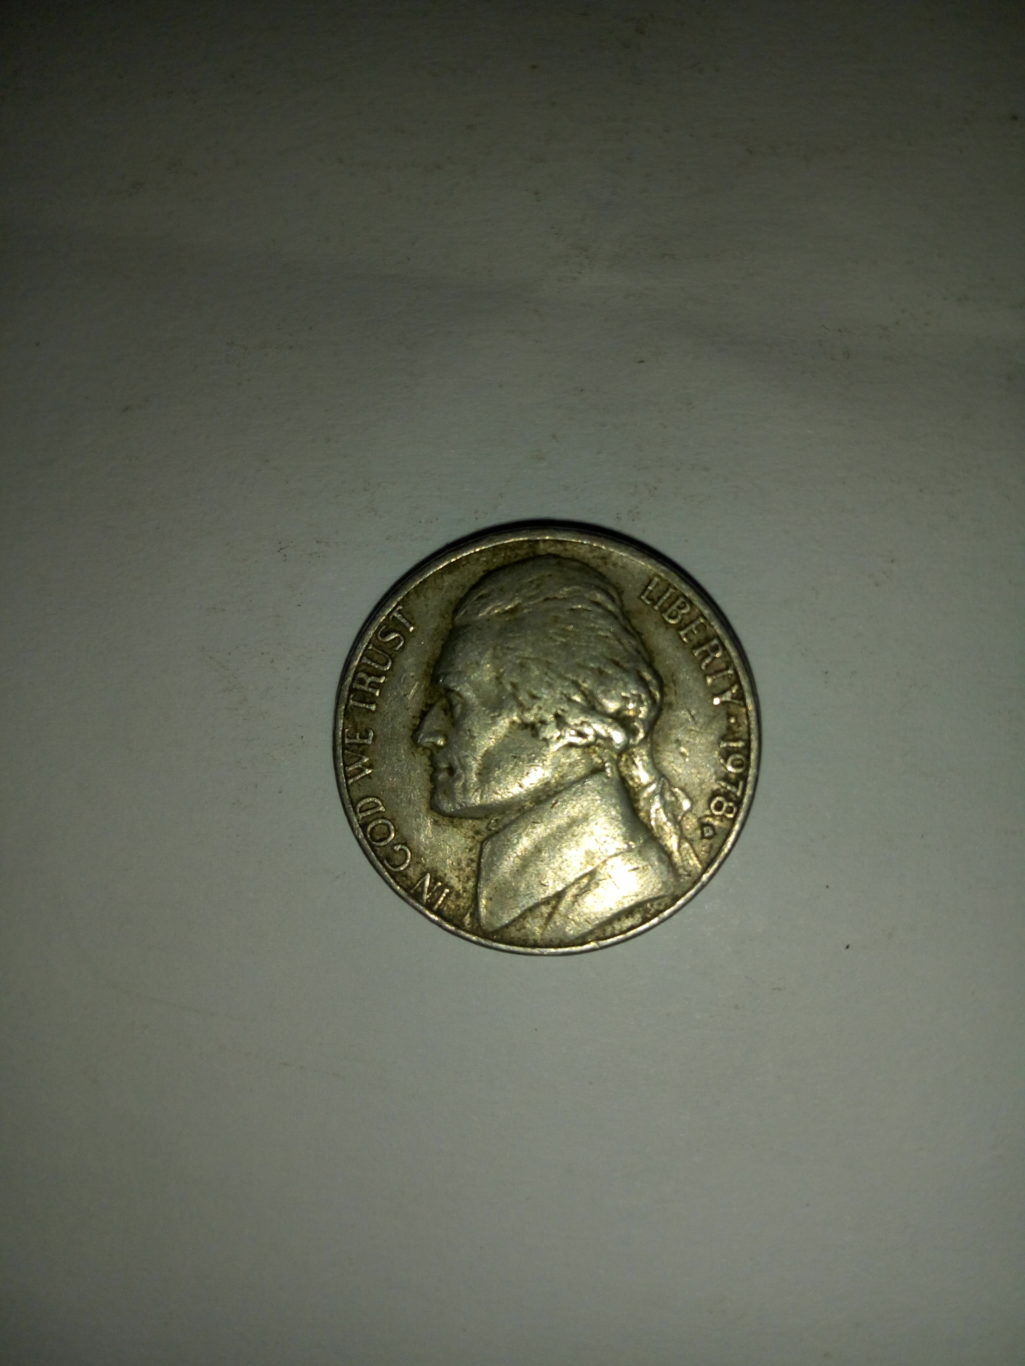 1978_united States of america 5 cents